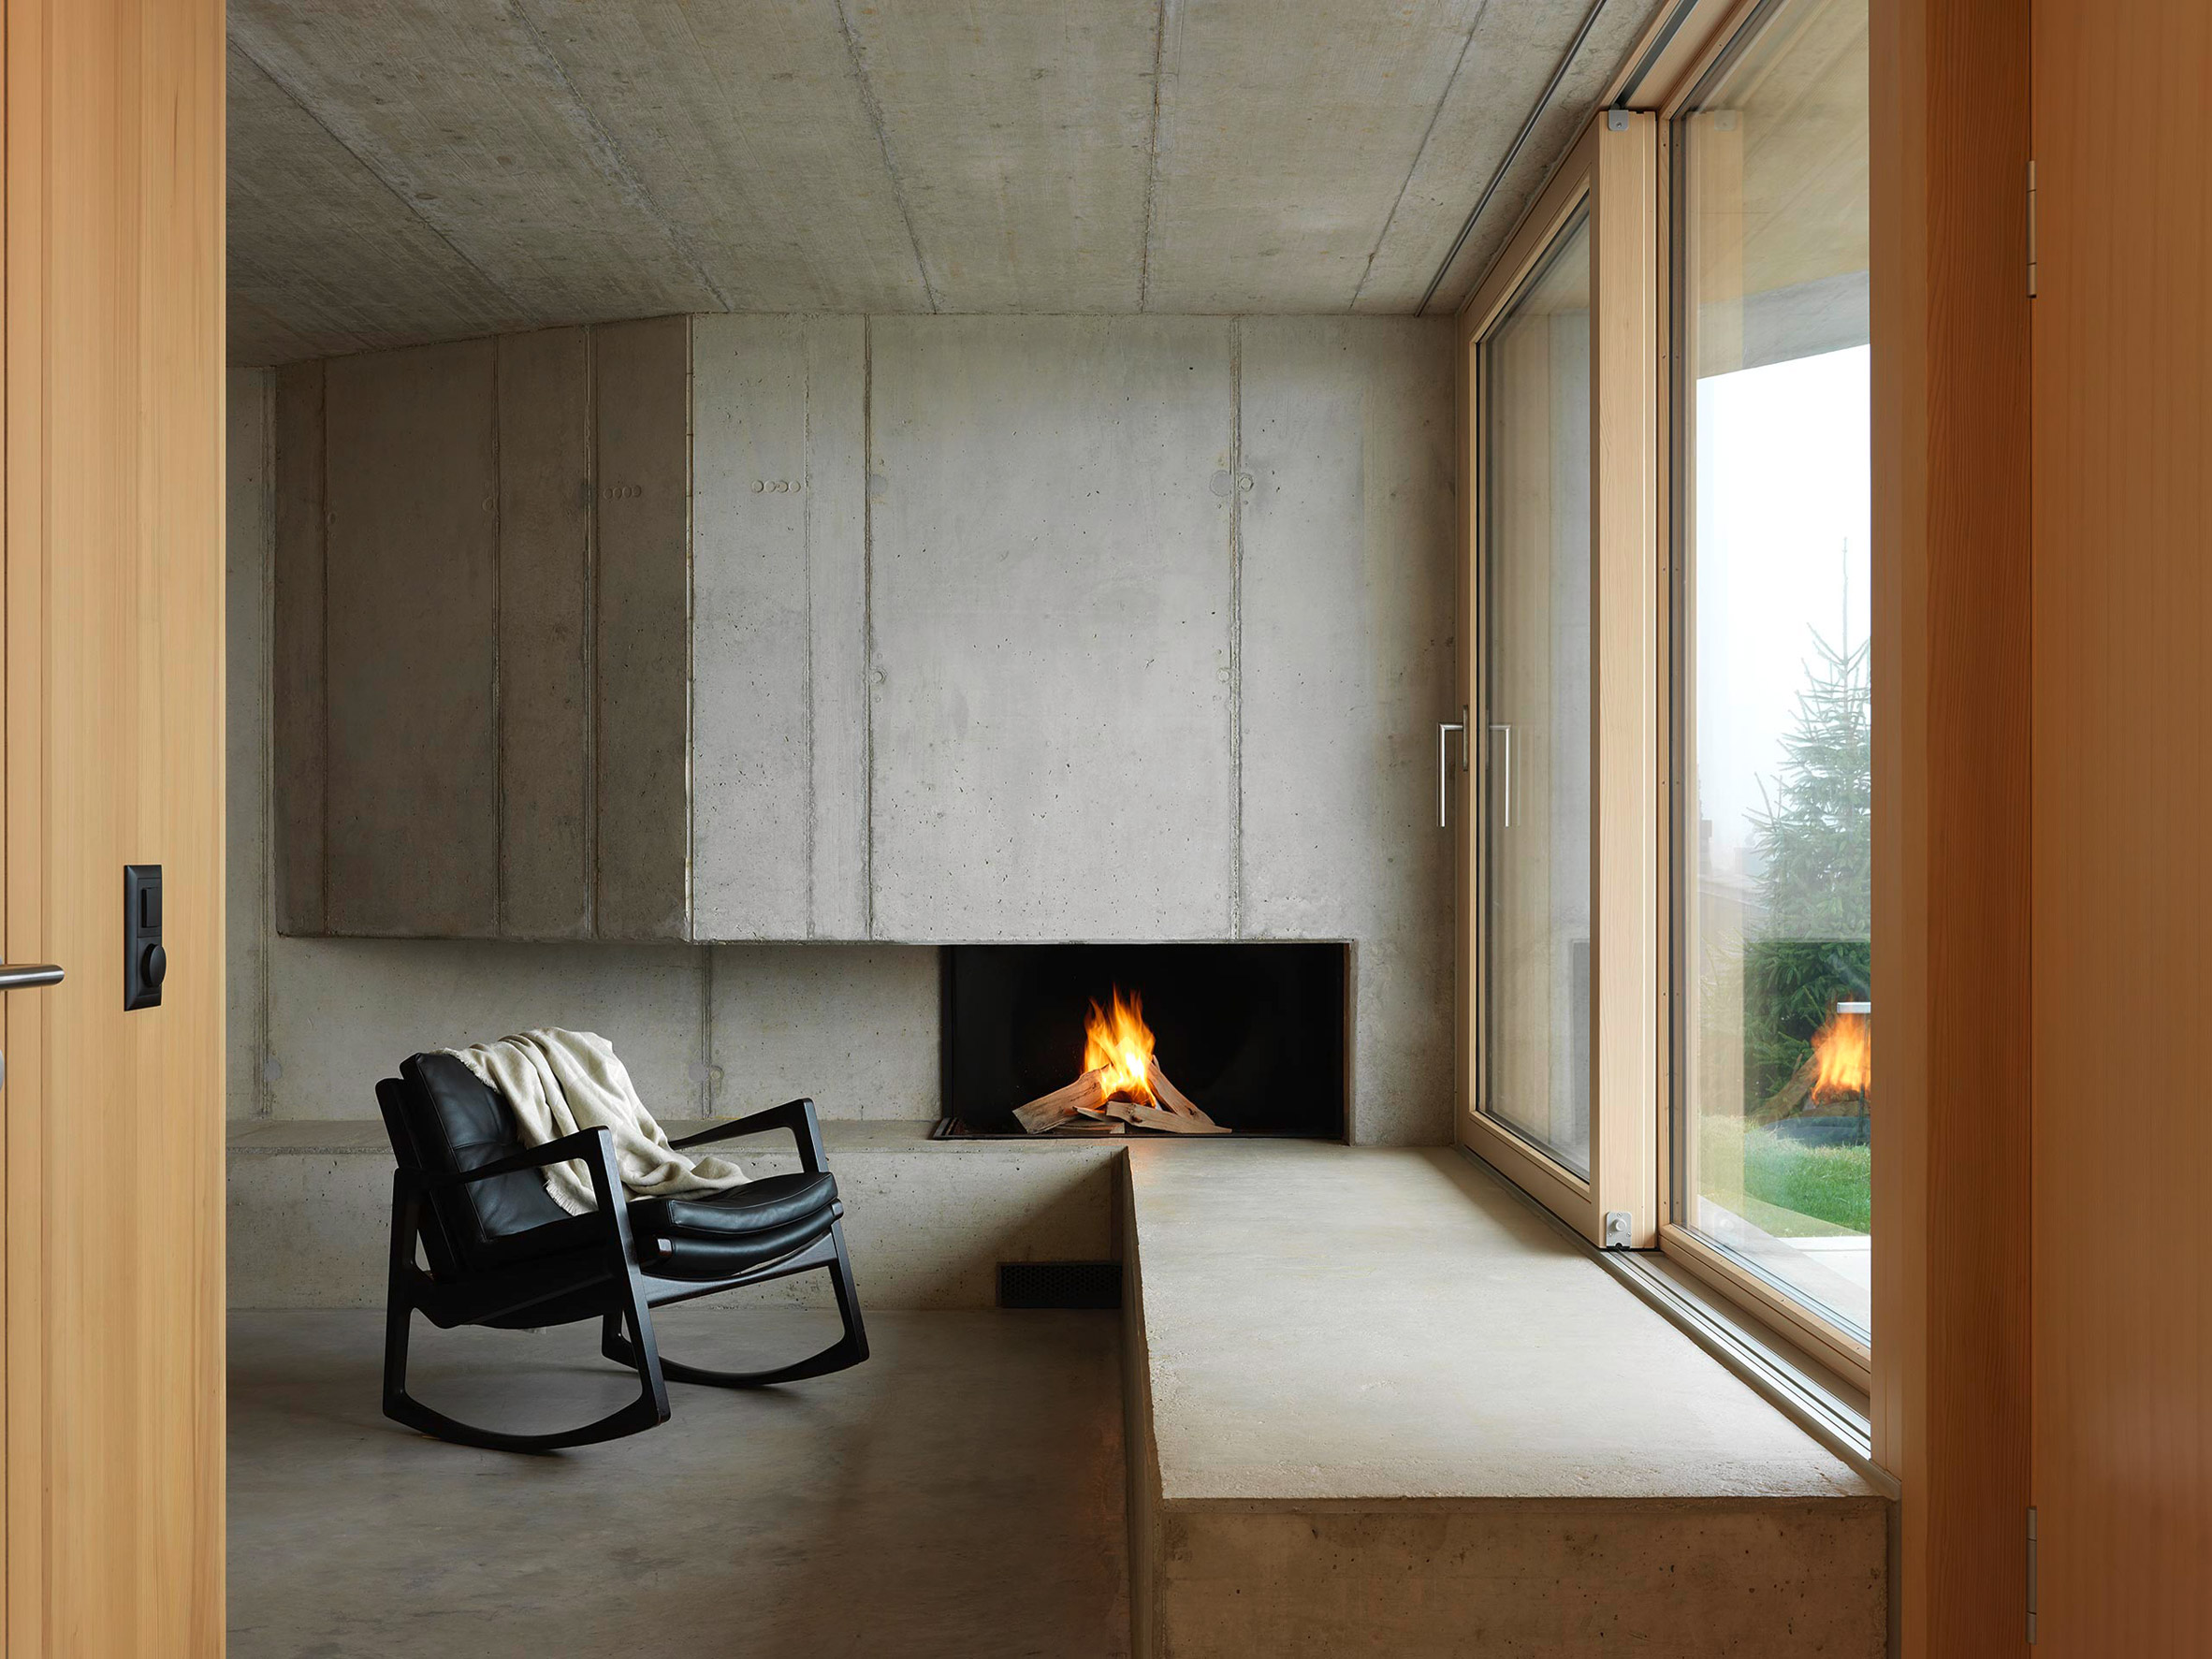 Sitting room with concrete fire place